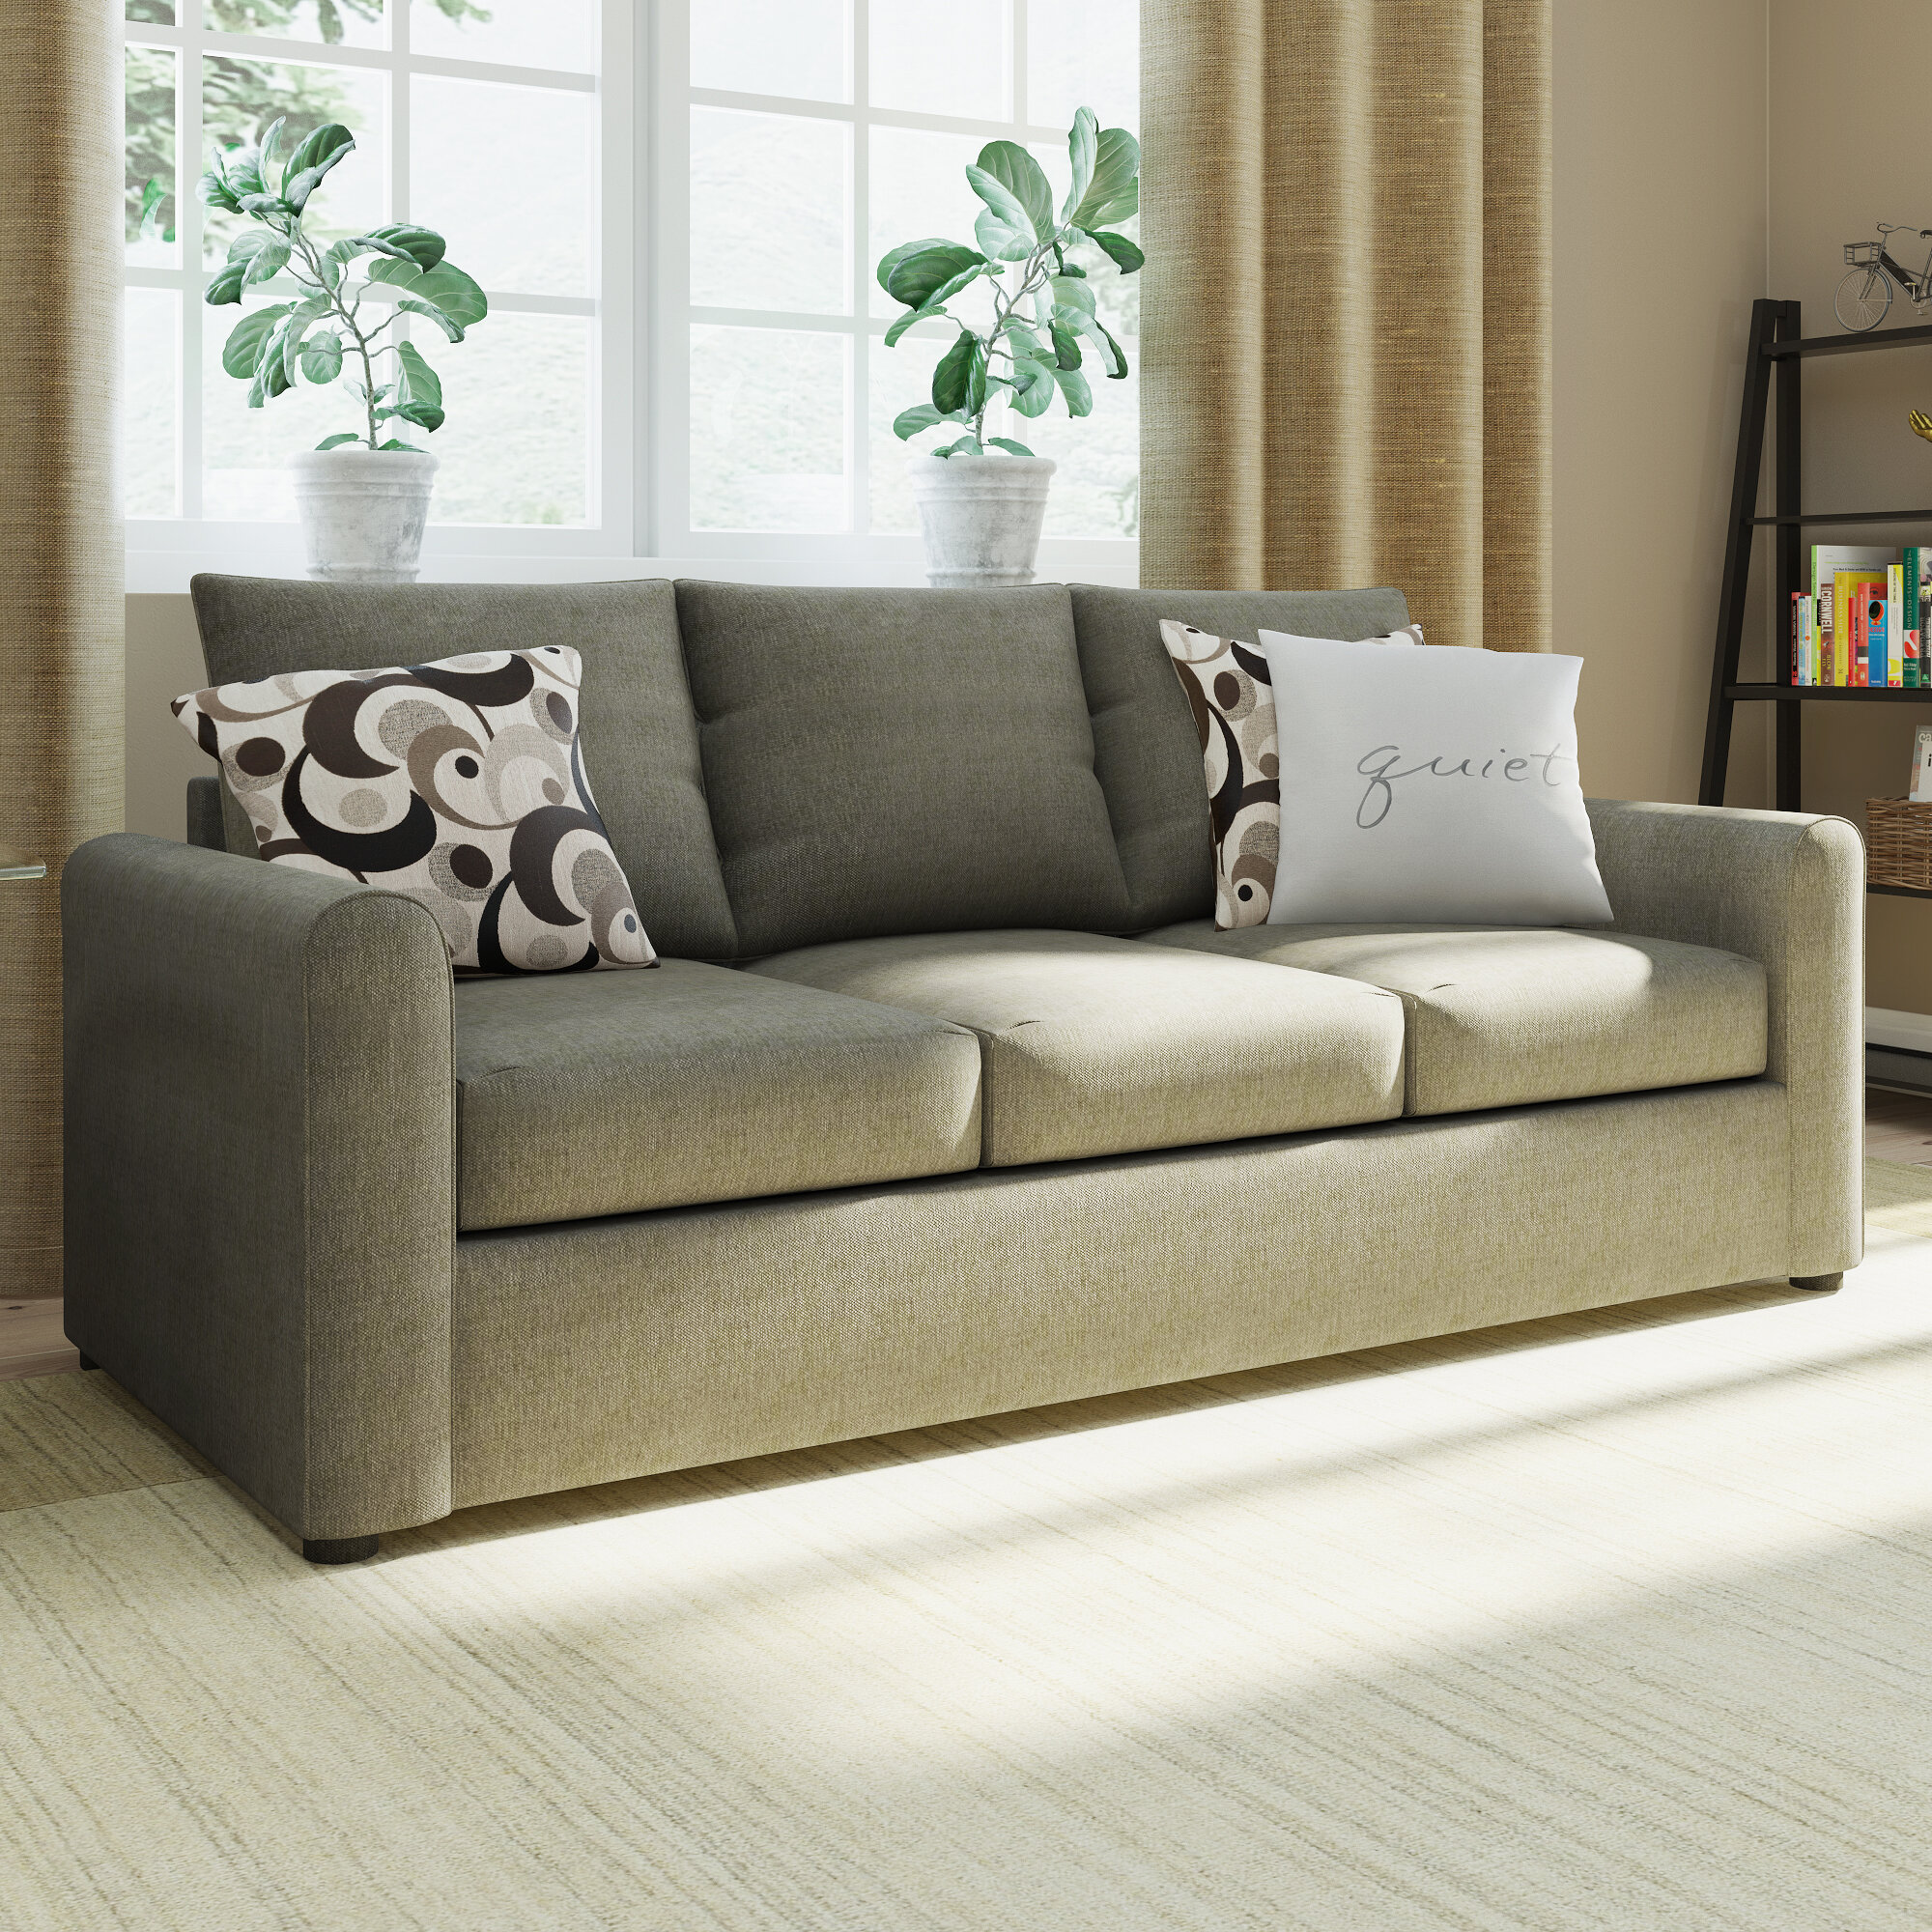 Red Barrel Studio Serta Upholstery Martin House Modern Sleeper Sofa ...